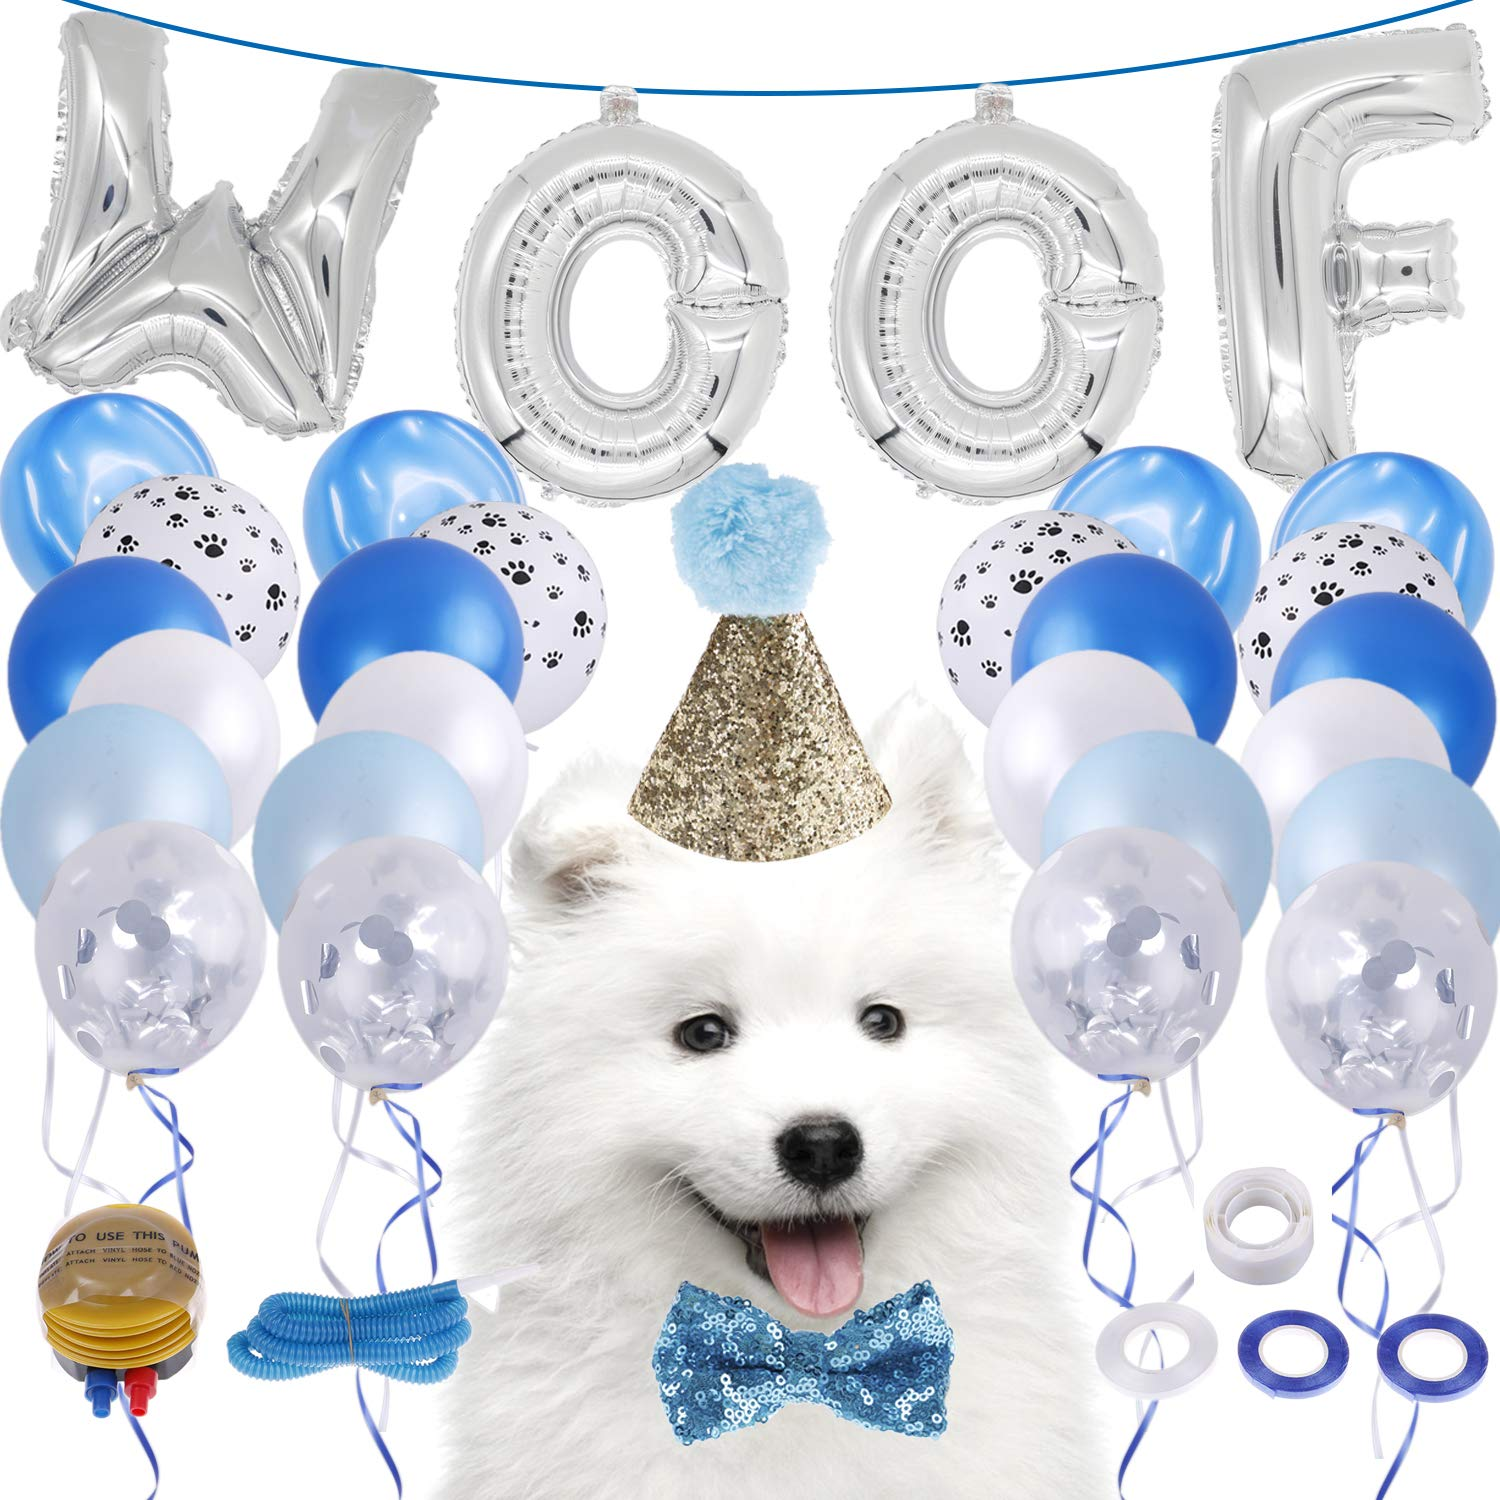 bluee LOCOLO Dog Birthday Party Supplies,20 Pieces bluee Balloons,Party Decorations Paw Balloons,Dog Birthday Bow Tie and Hat,WOOF Letter Latex Balloons,Balloon Ribbon,Balloon Glue and Balloon Pumps (bluee)